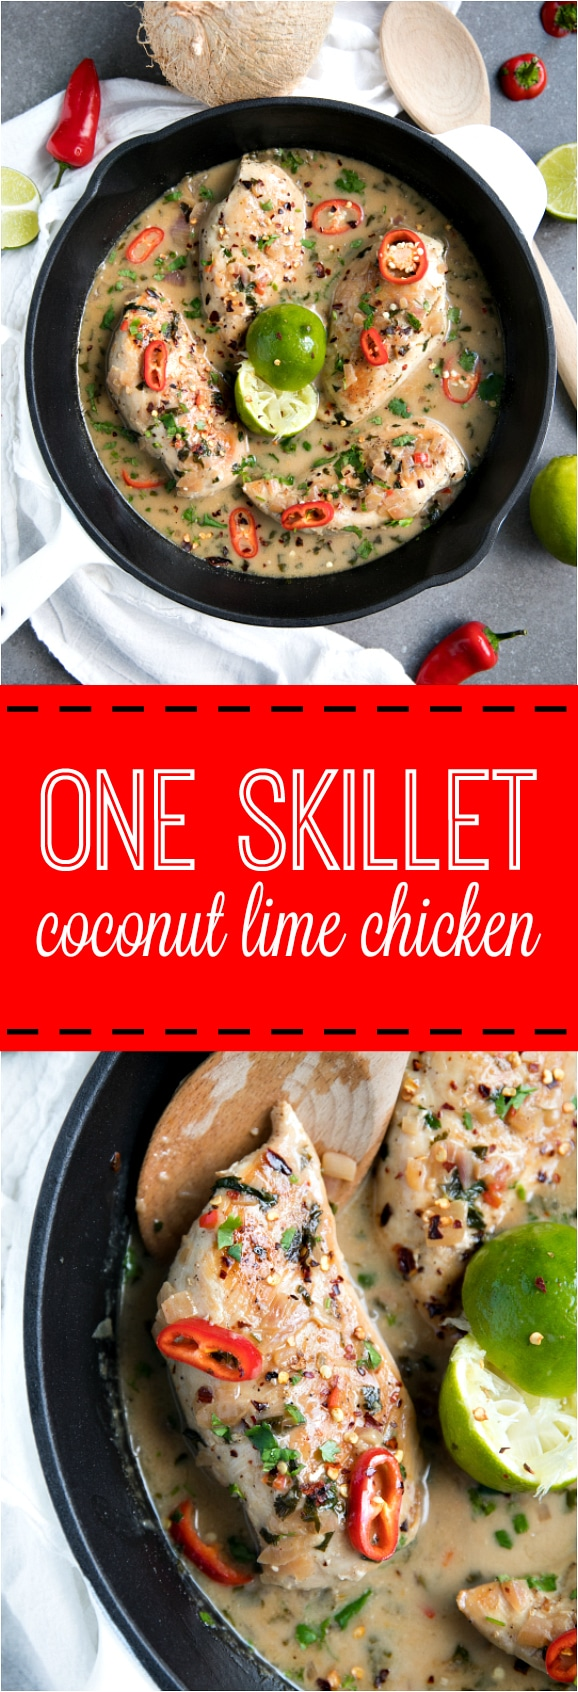 One Skillet Coconut Lime Chicken via @theforkedspoon